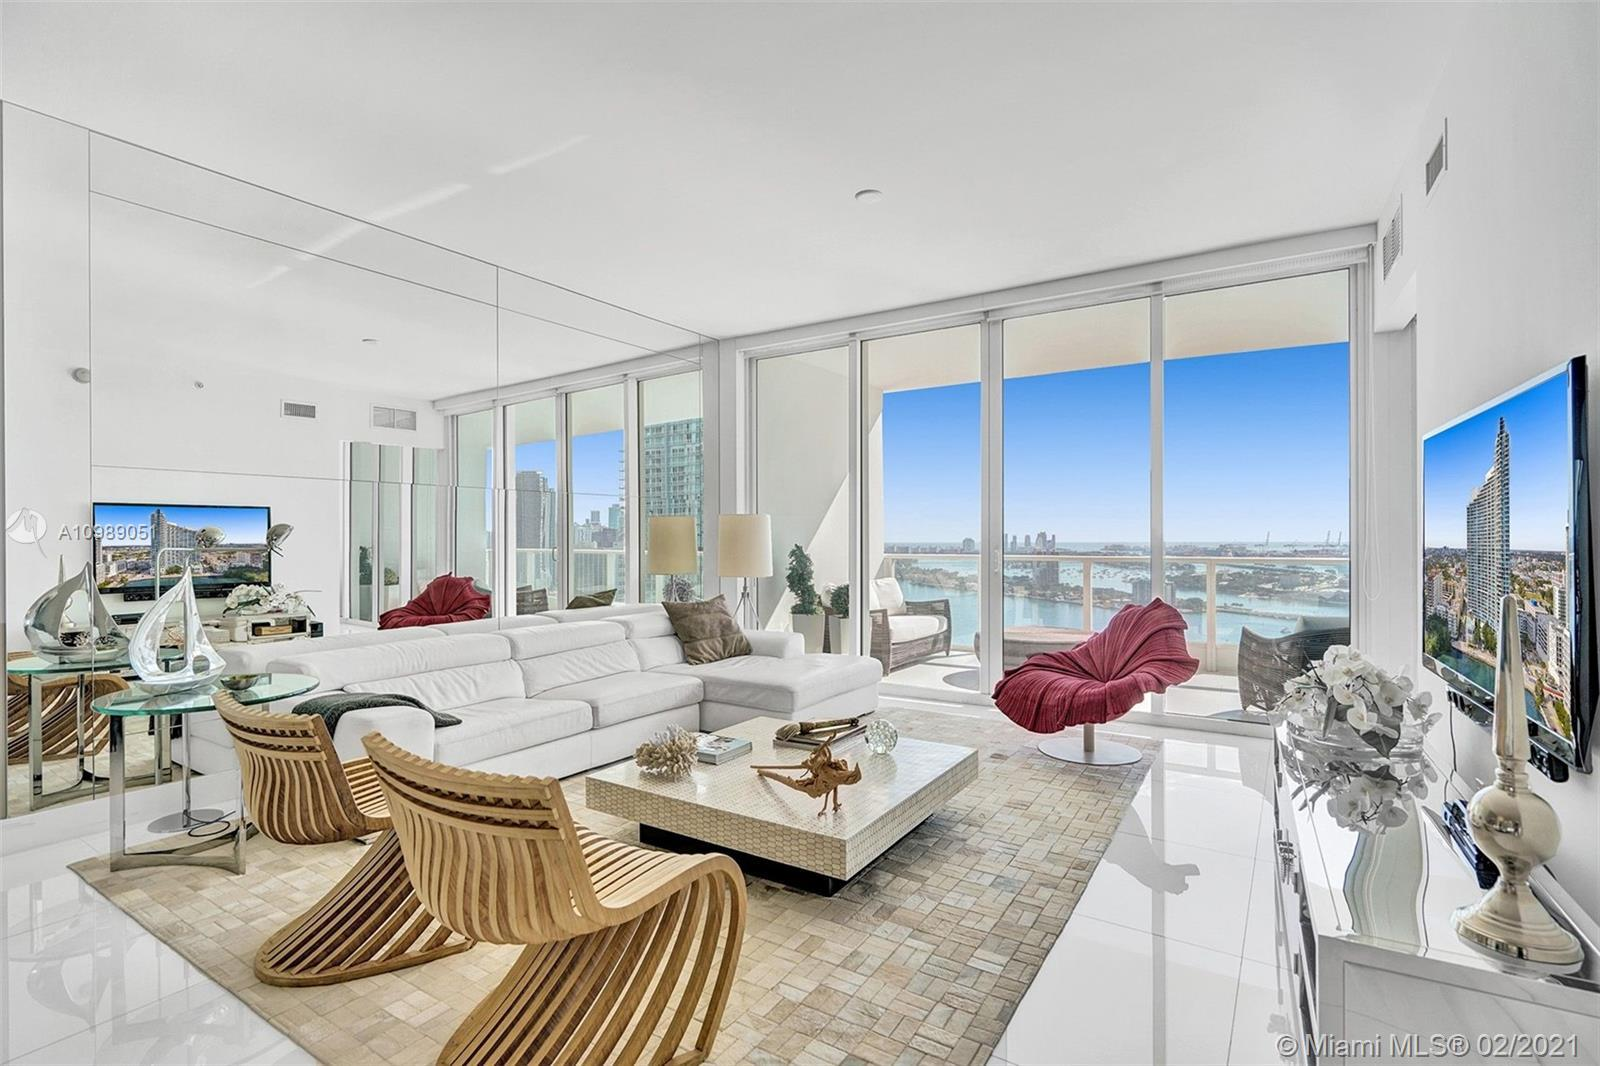 MIAMI RICHES PRESENTS A STUNNING FLOW-THROUGH, FULLY FURNISHED DESIGNER UNIT IN EDGEWATER'S PRESTIGI